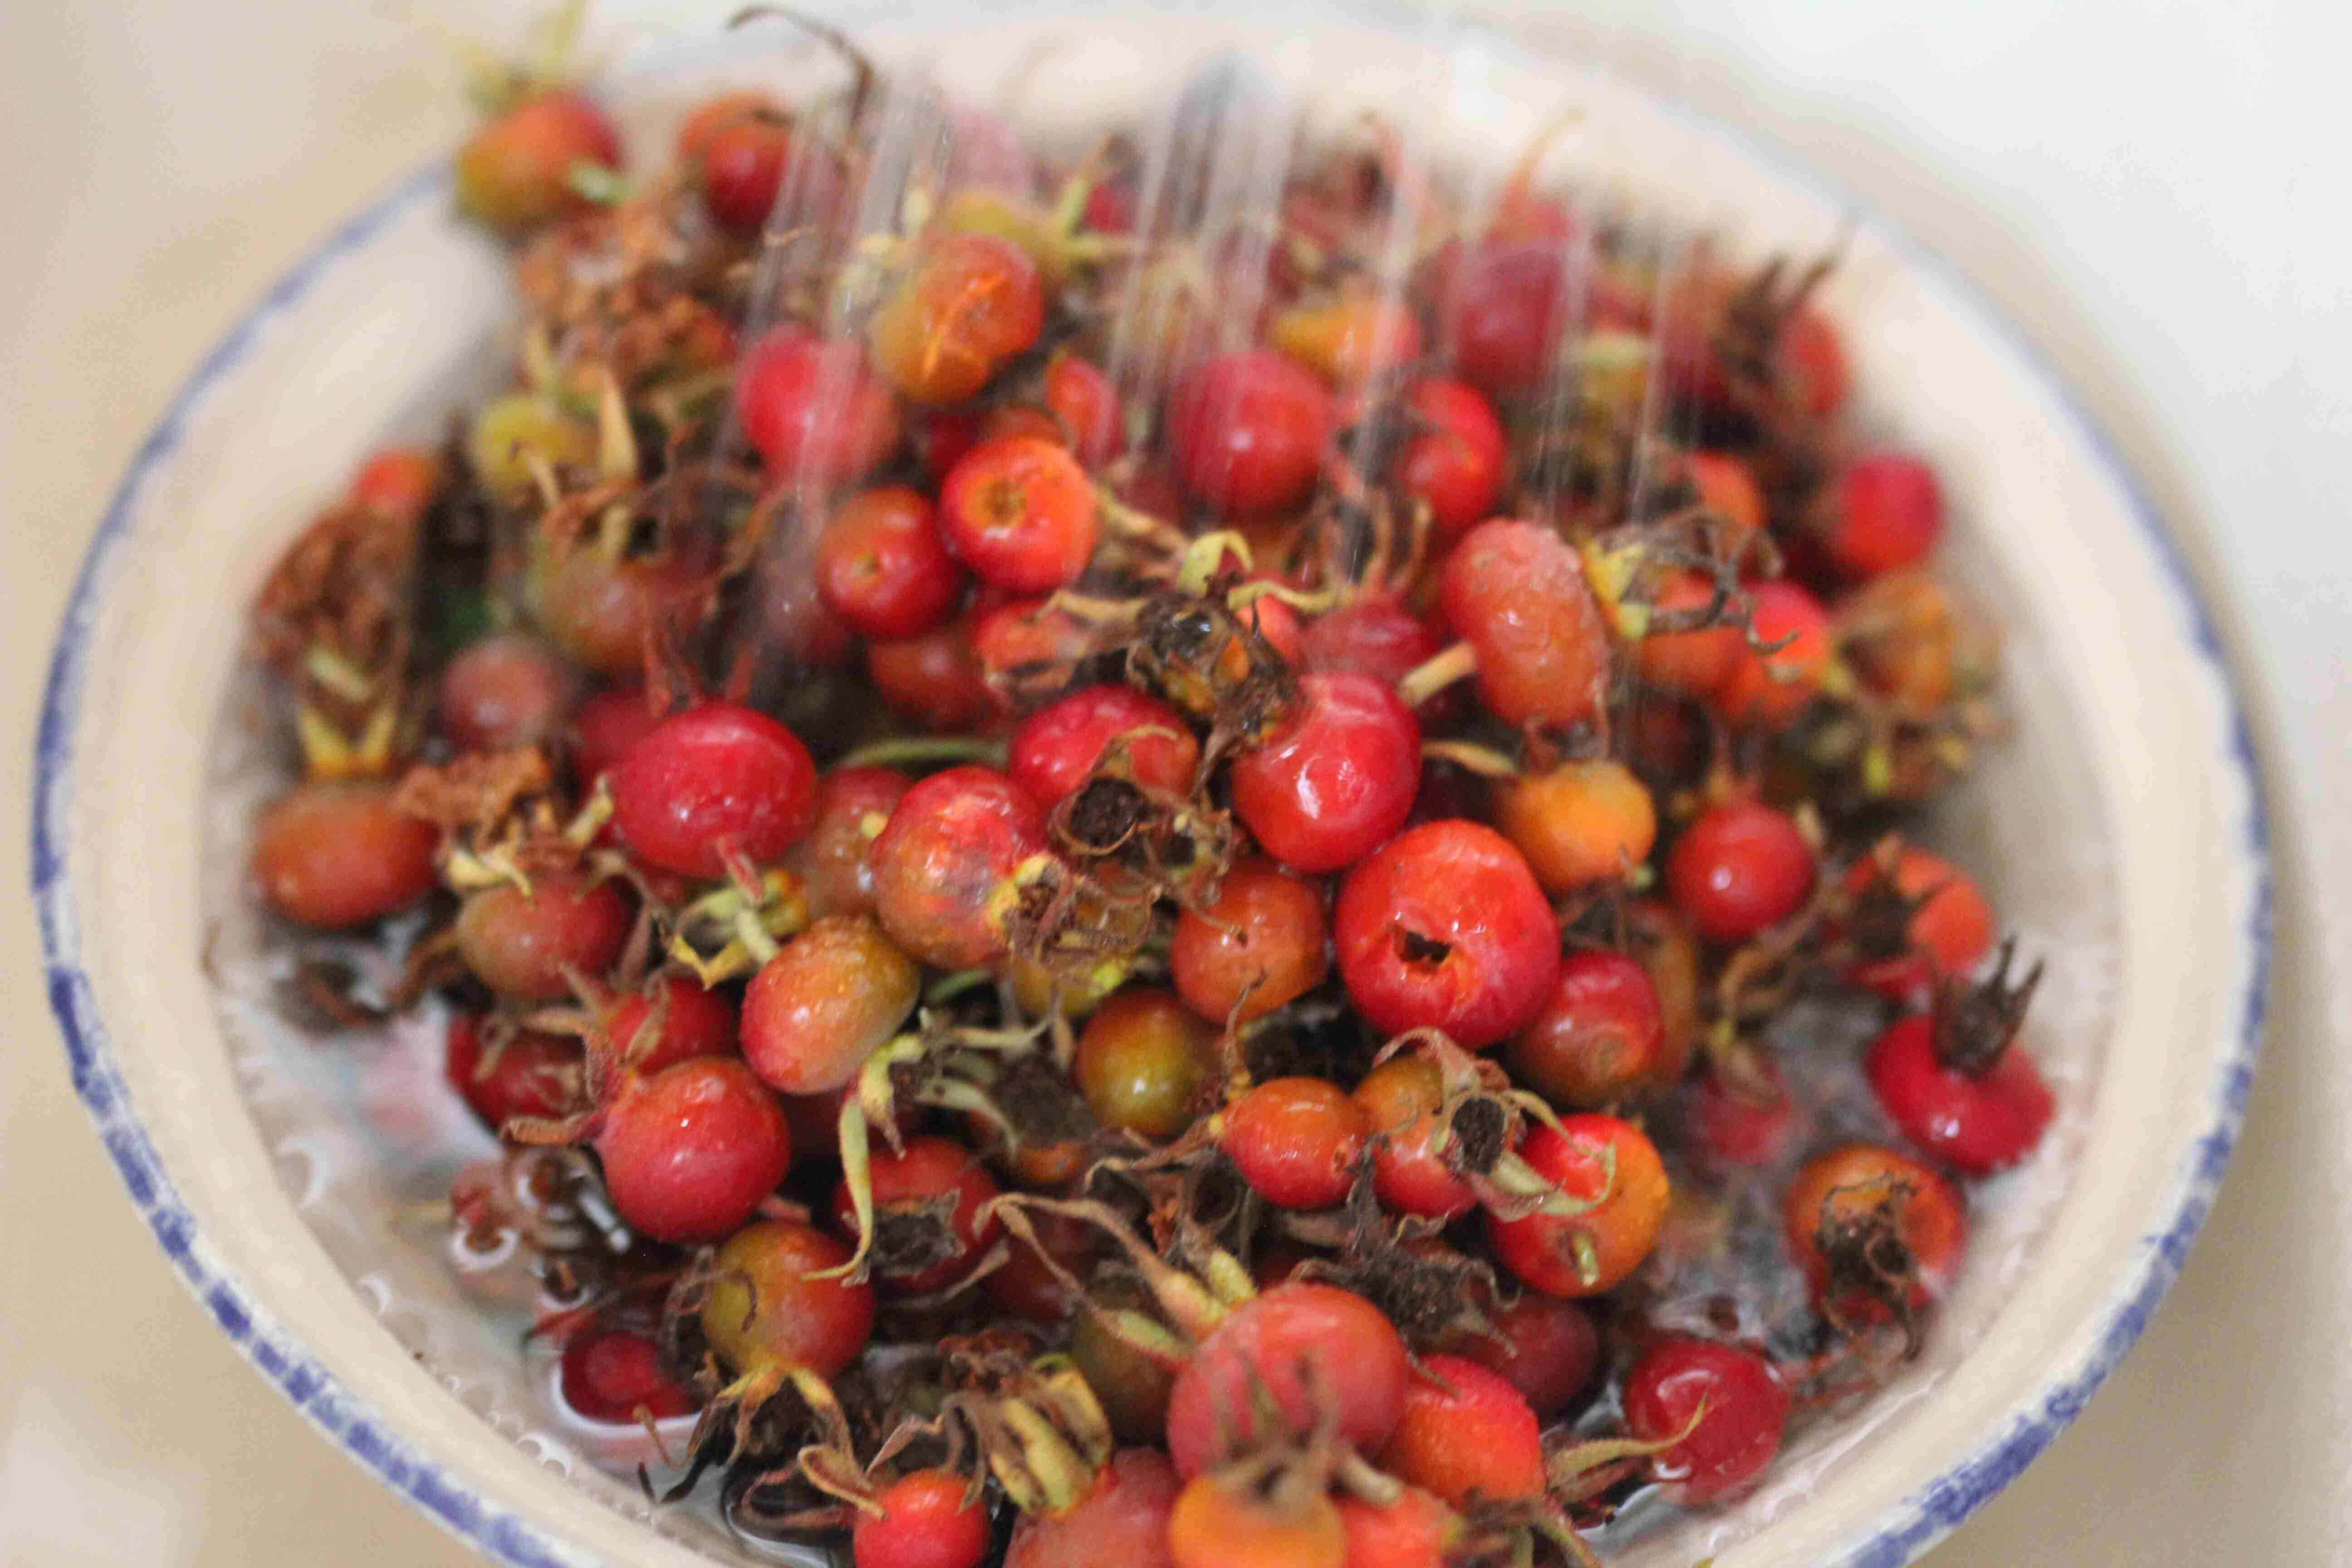 How To Make Rose Hip Wine (Recipe & Detailed Directions)